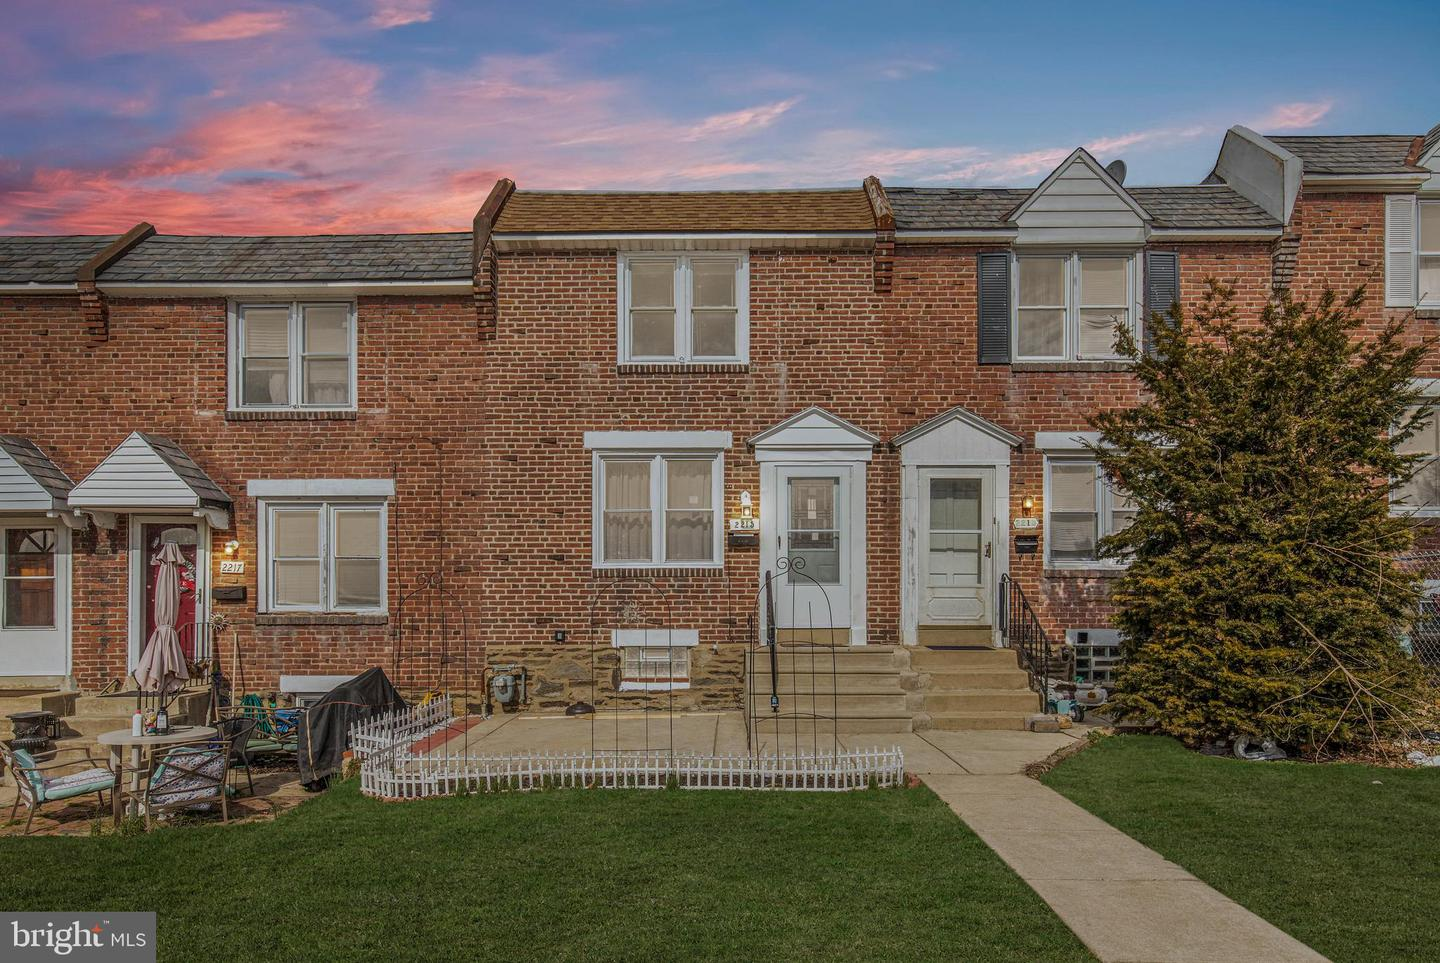 2215 Windsor Avenue Drexel Hill, PA 19026